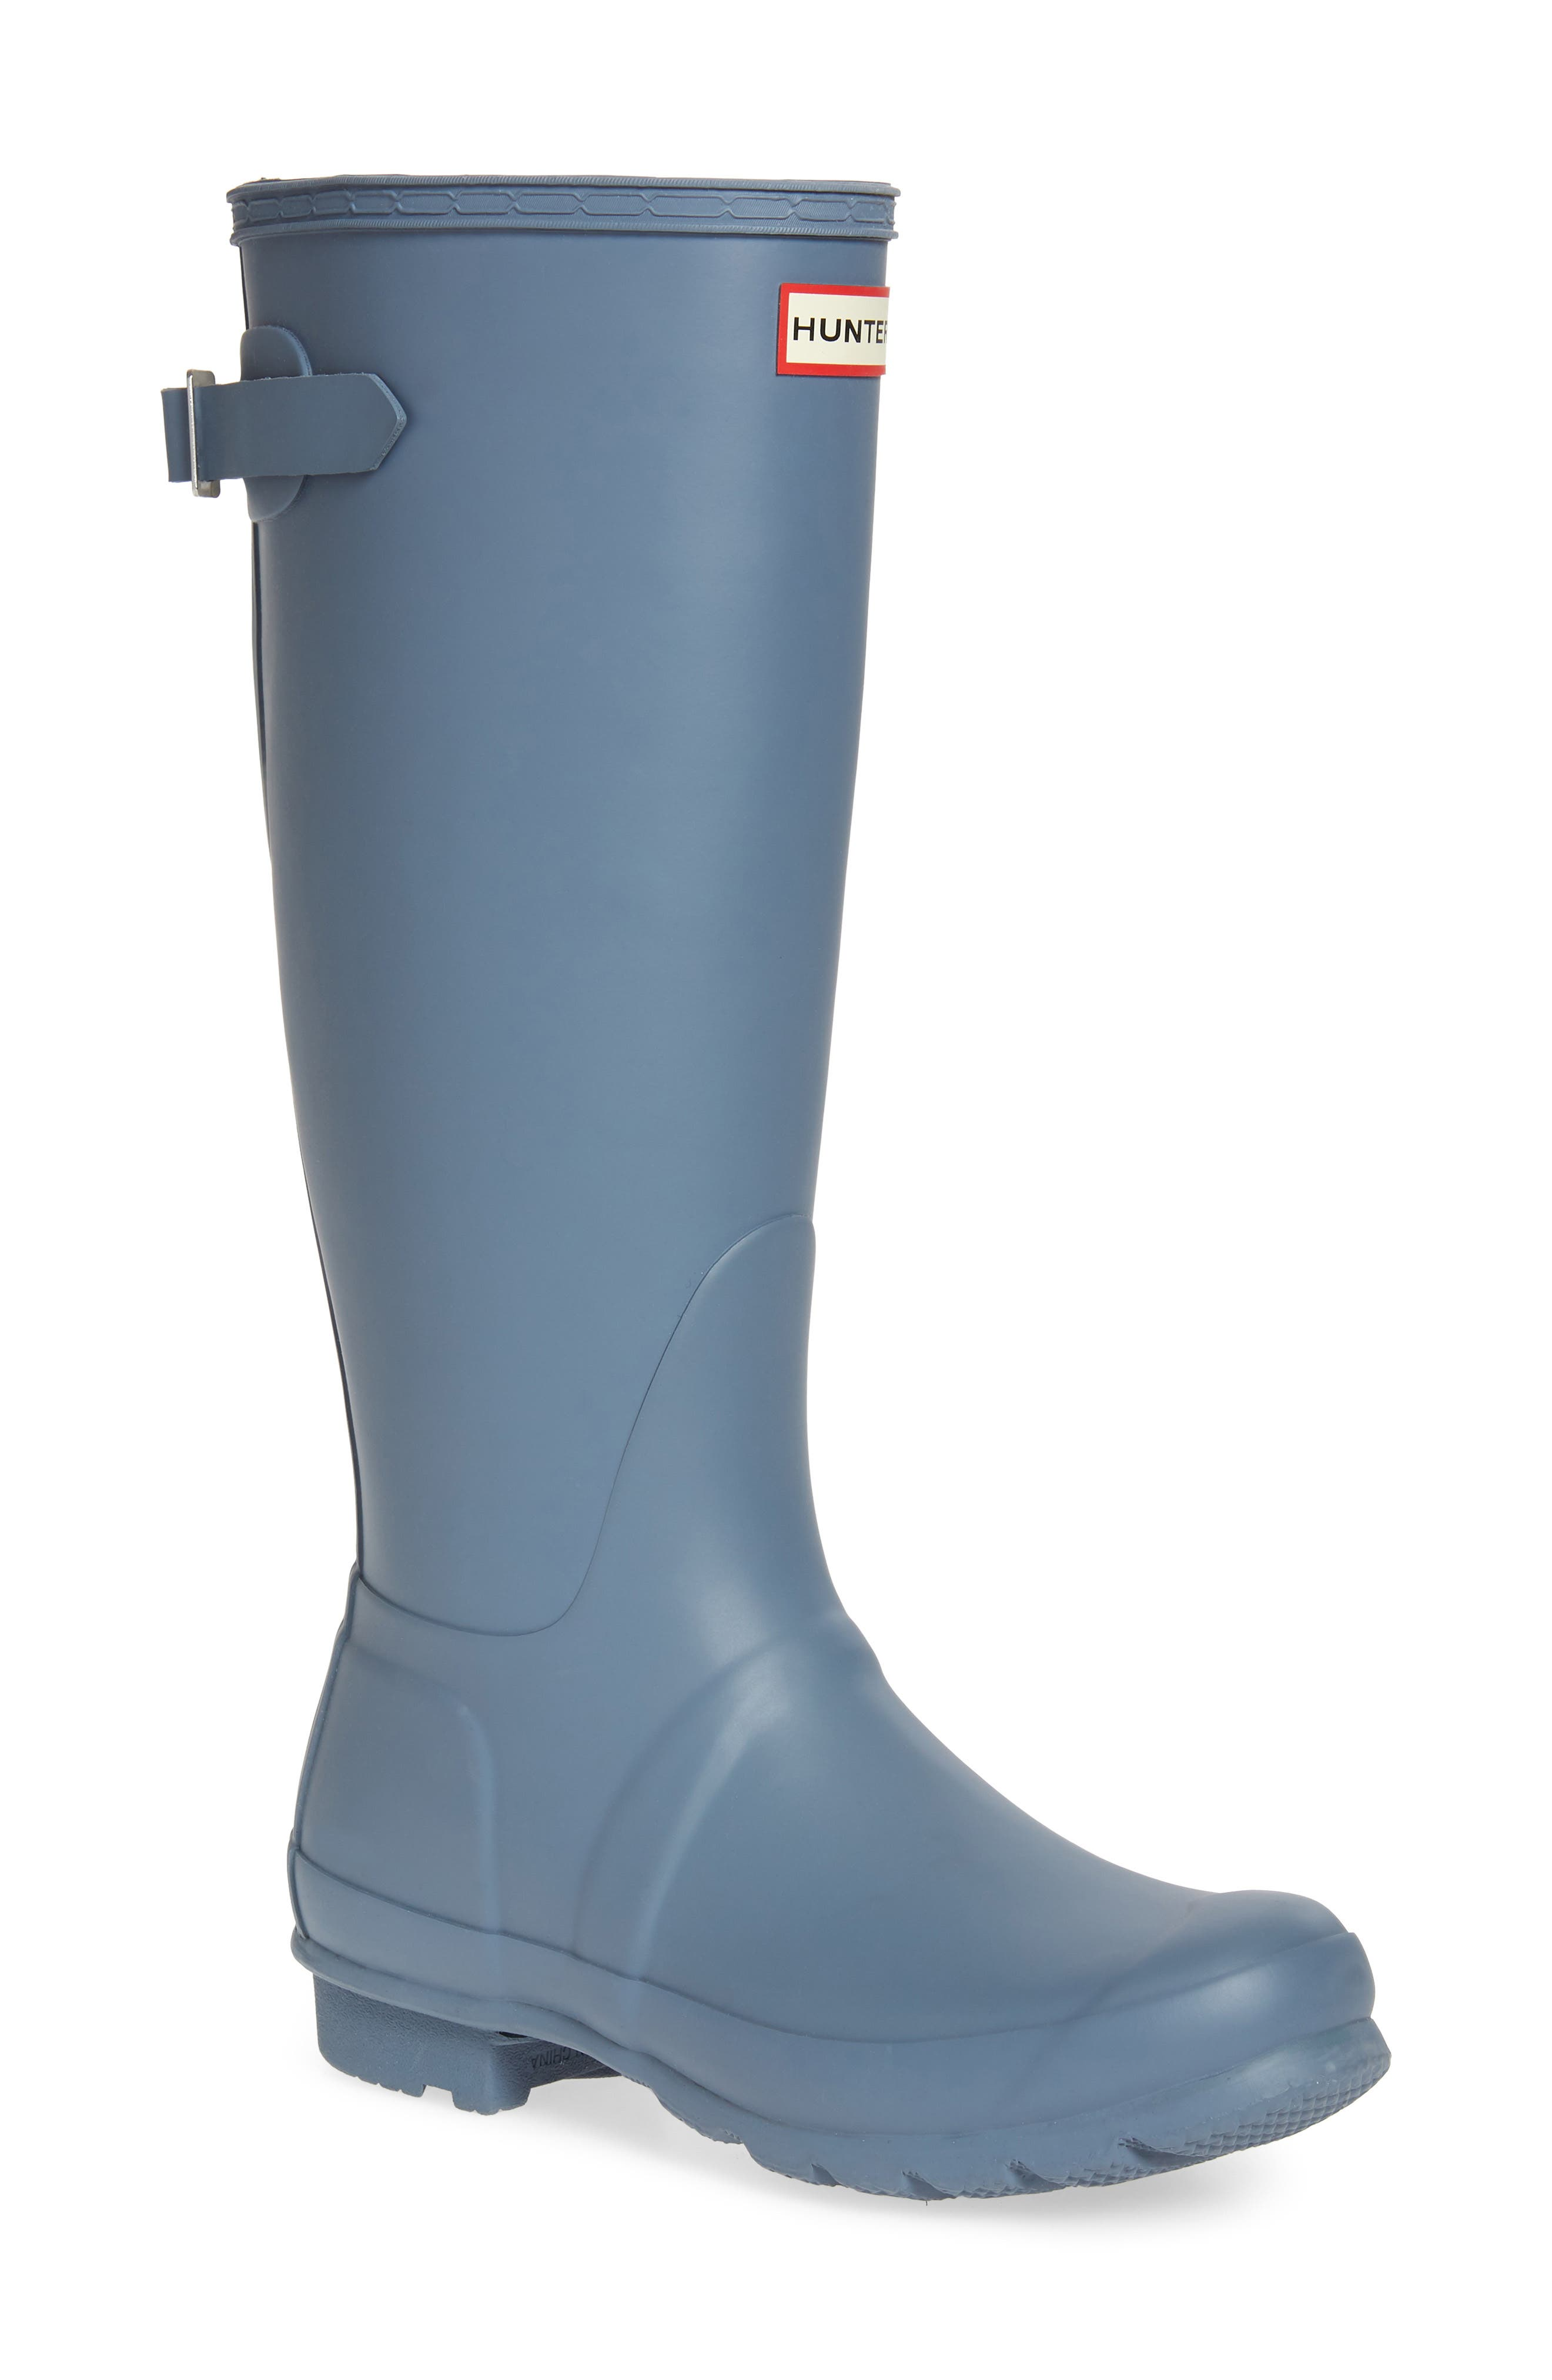 HUNTER Original Tall Adjustable Back Waterproof Rain Boot, Main, color, GULL GREY MATTE